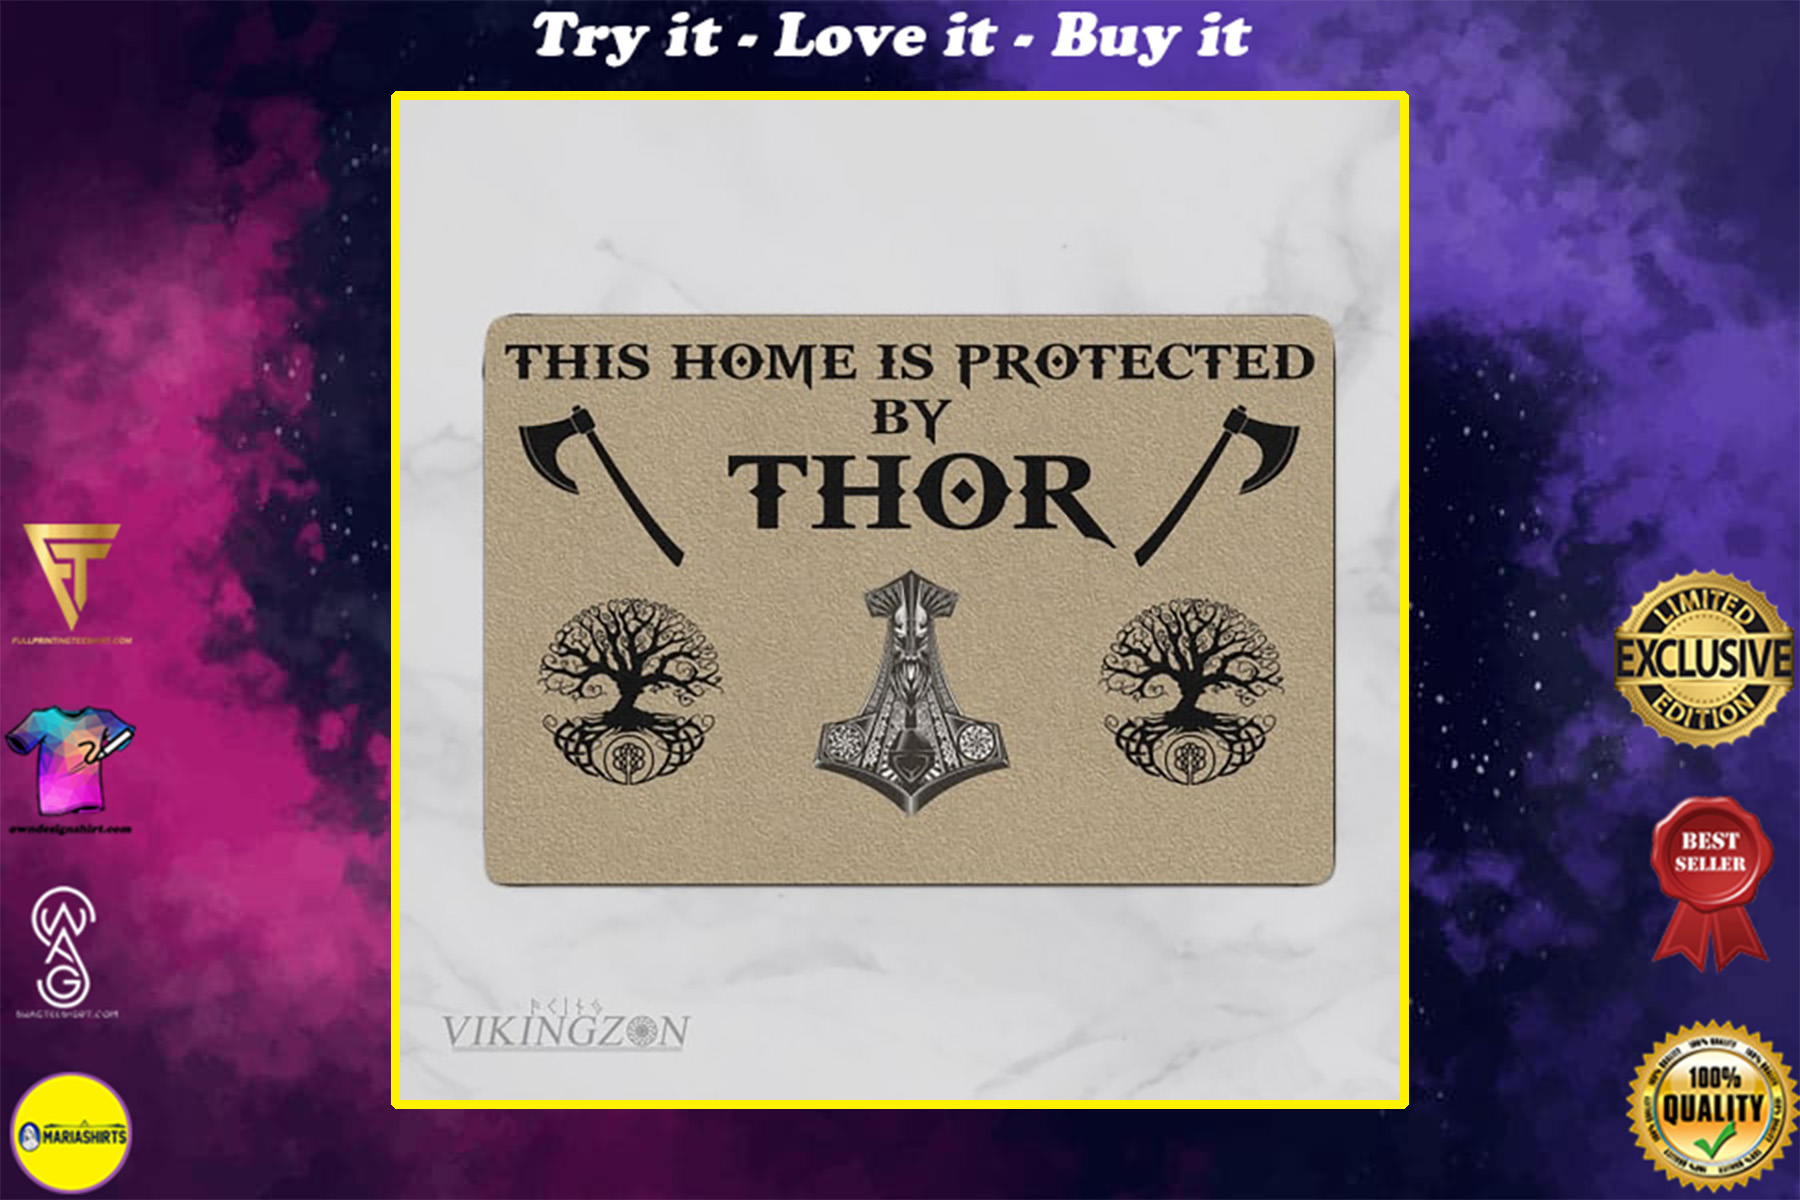 viking this home is protected by thor full printing doormat